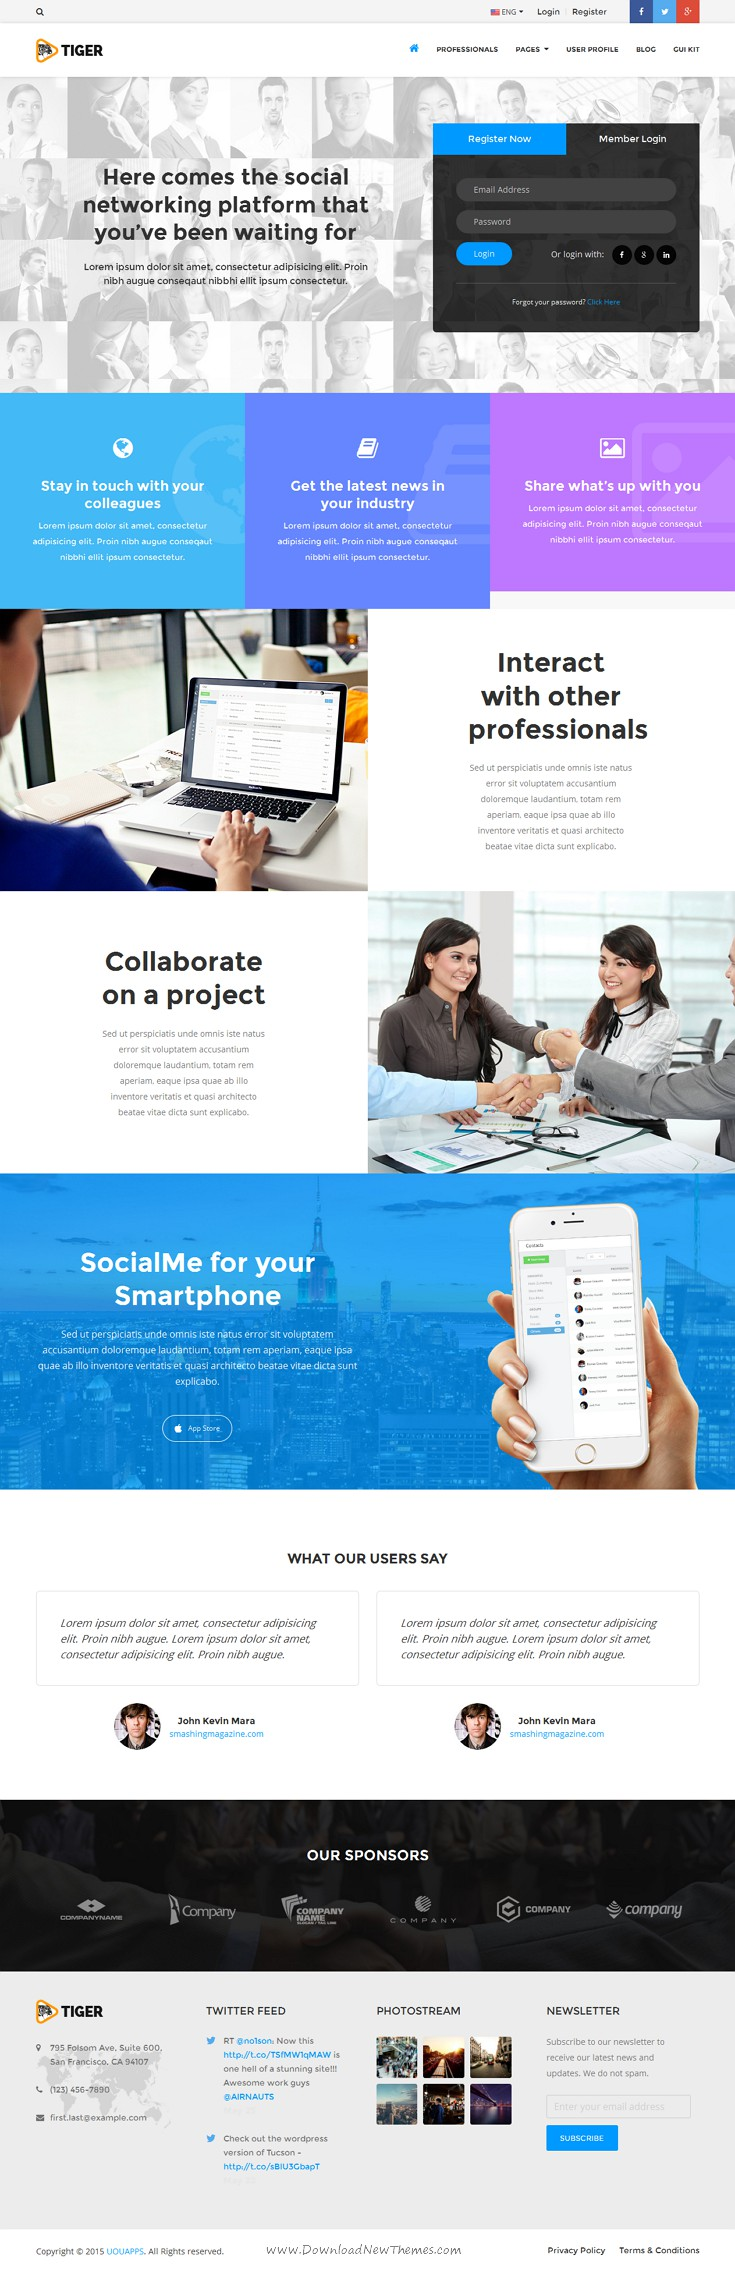 Tiger Is A Corporate Social Network Bootstrap Template That Is Ideal For Connecting Professionals And Companies W Website Inspiration Web Design Social Network